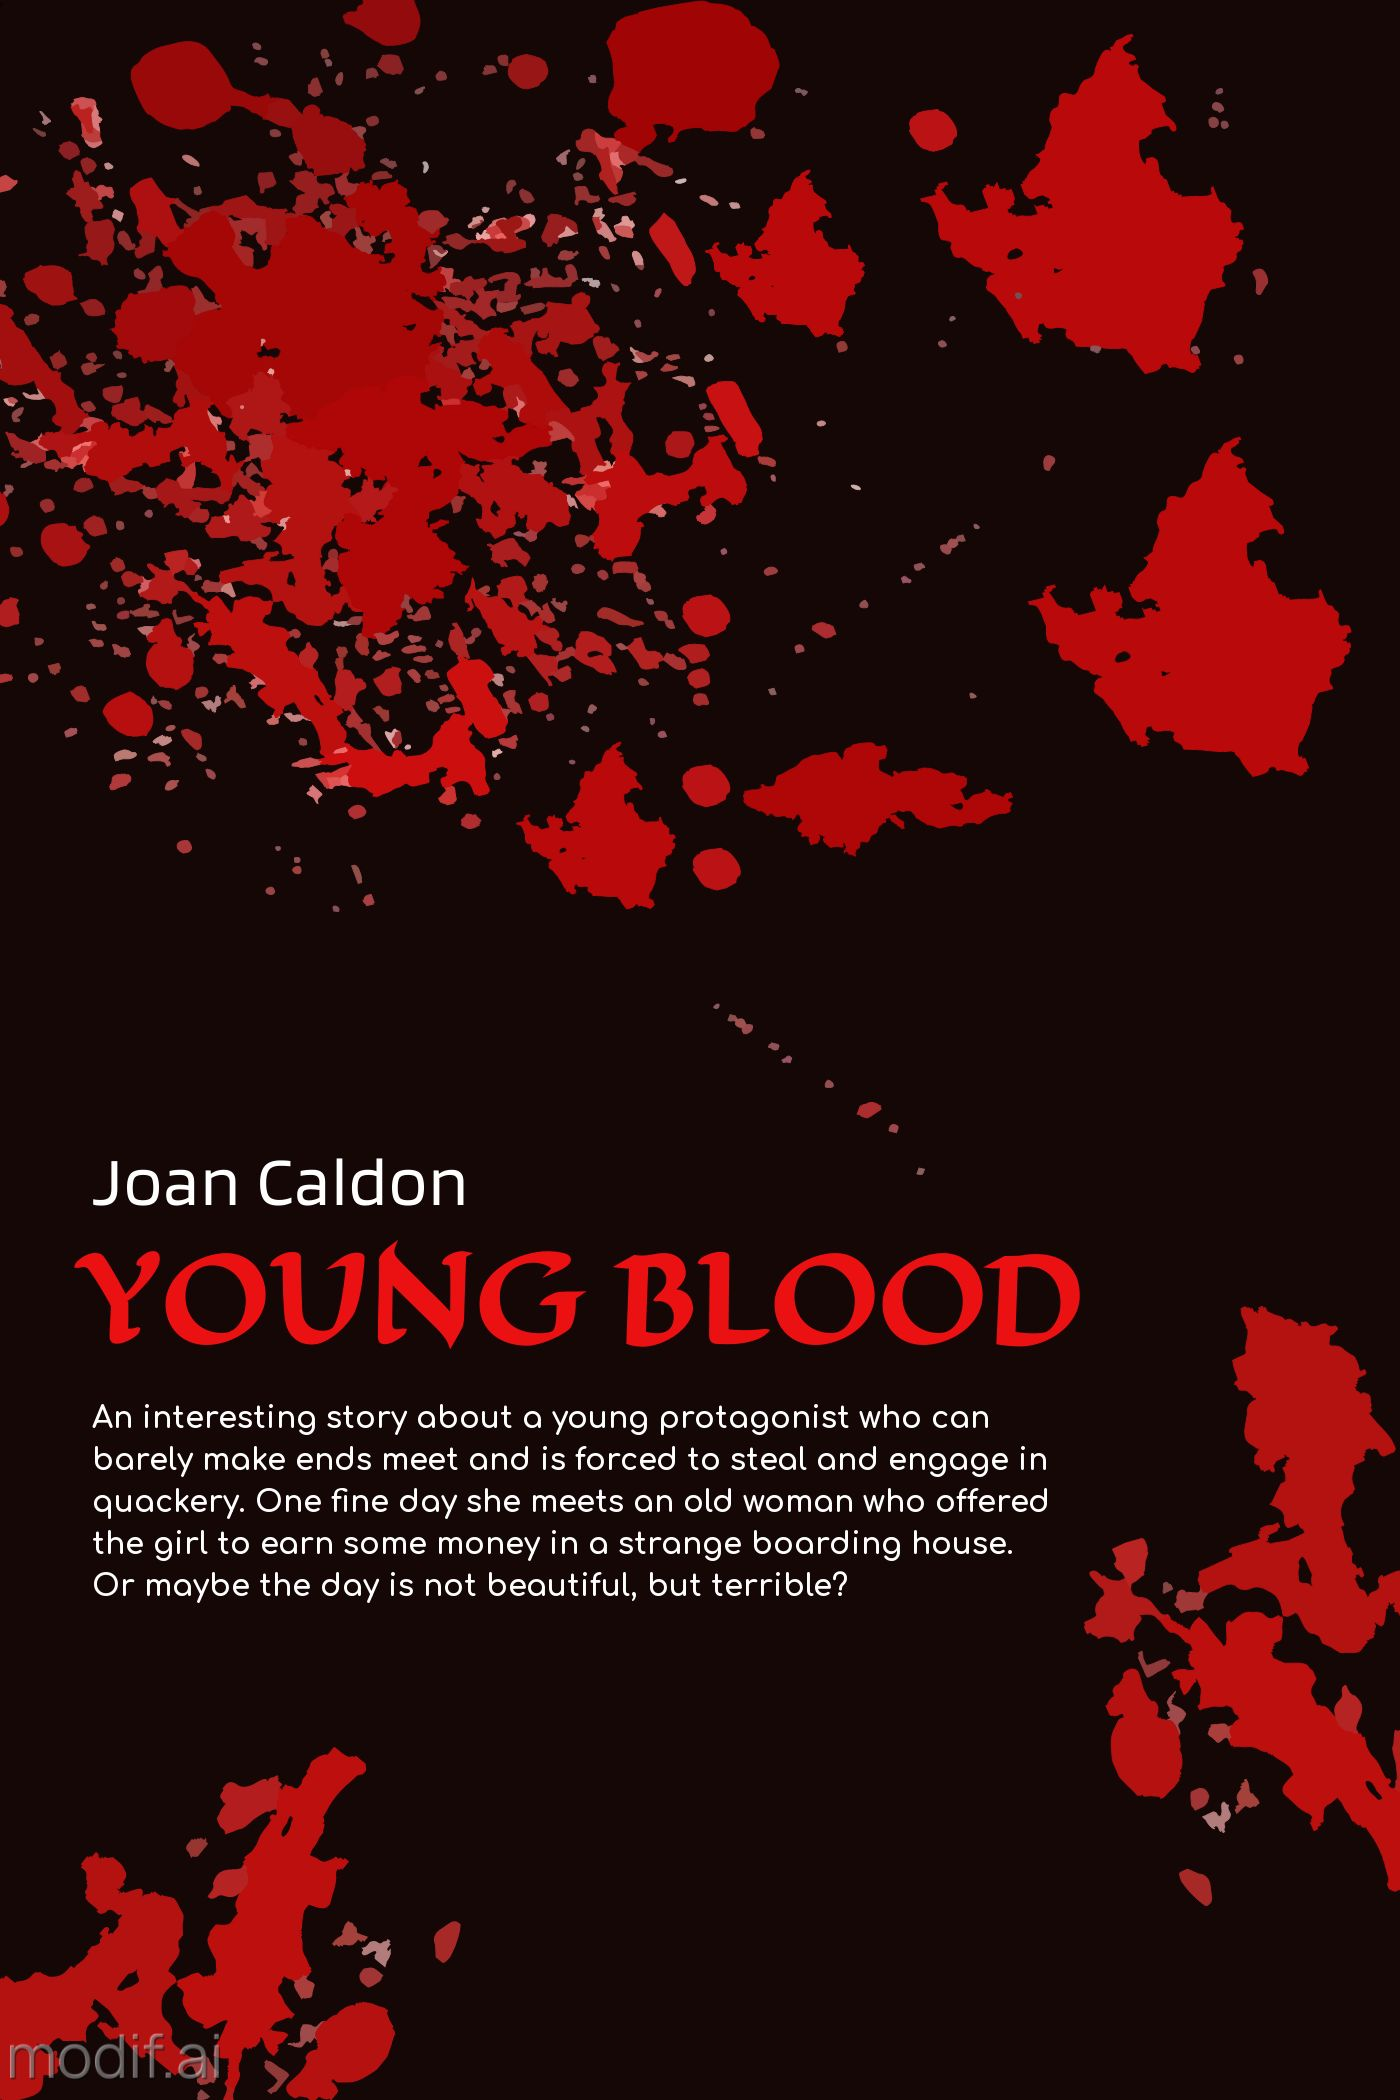 Young Blood Book Cover Template